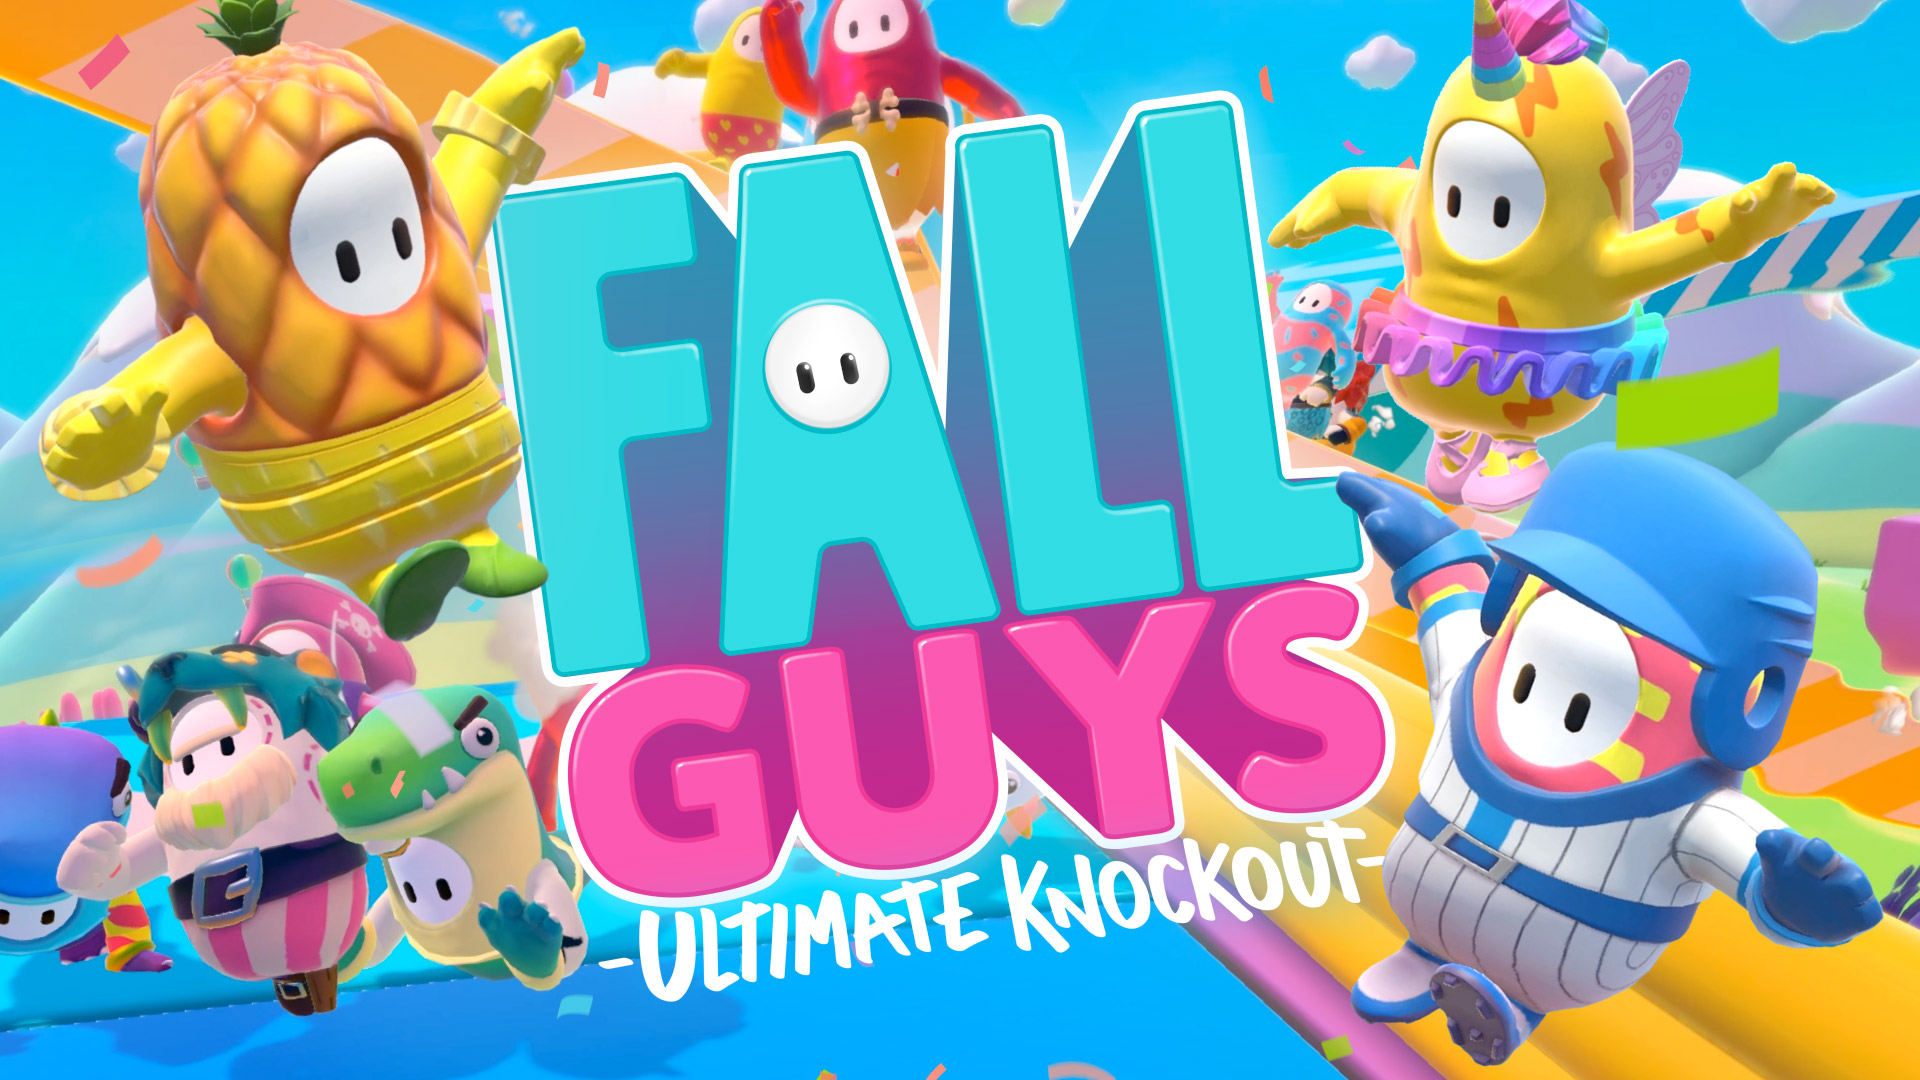 Fall Guys Minigames Guide - List of All Current Games